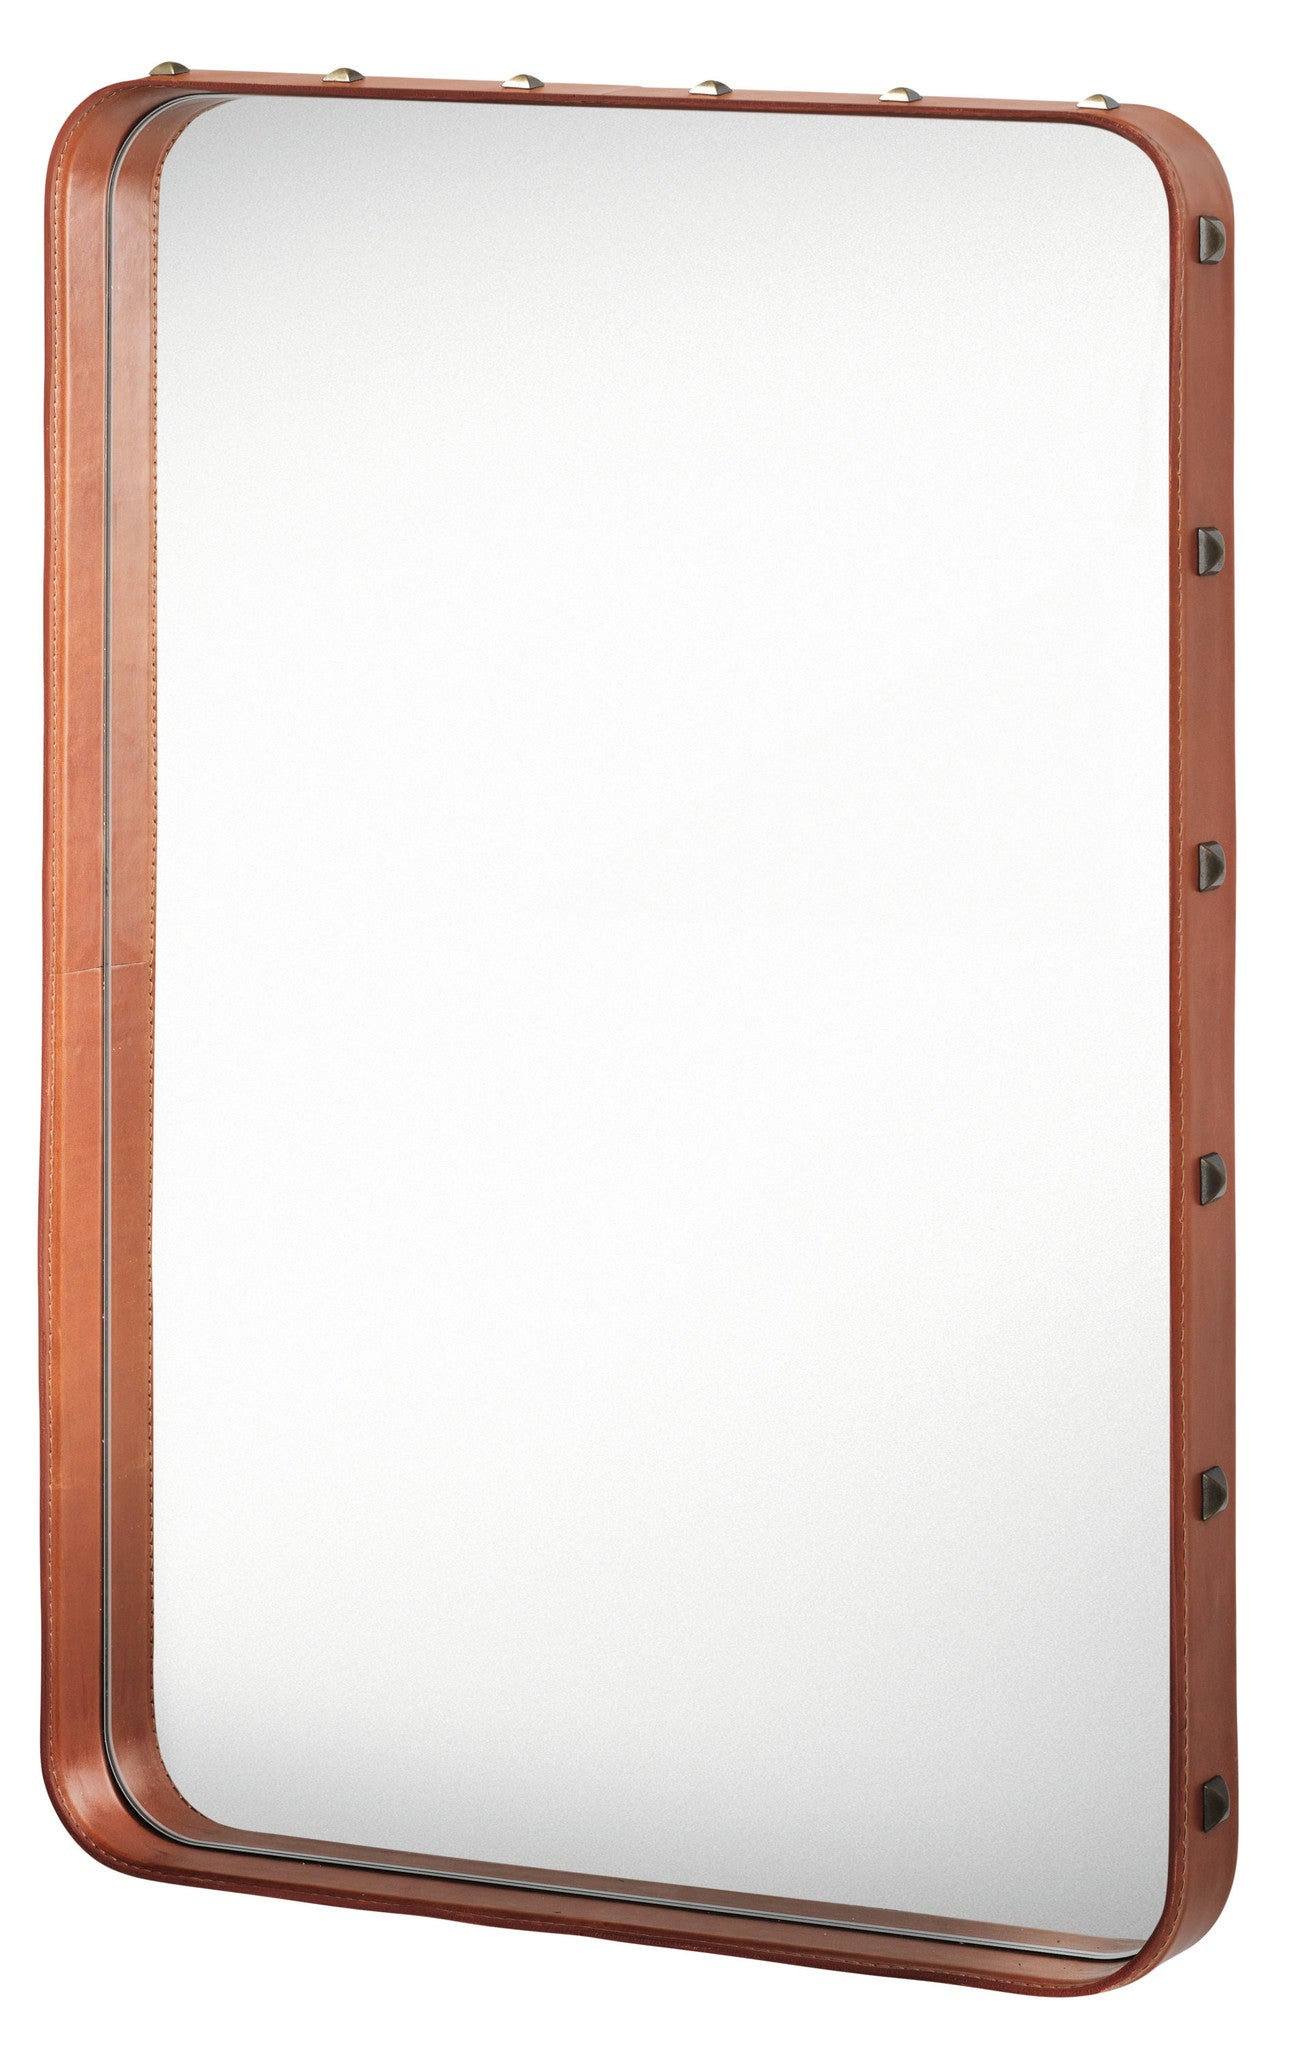 Adnet Wall Mirror - Rectangular, Tan fra GUBI